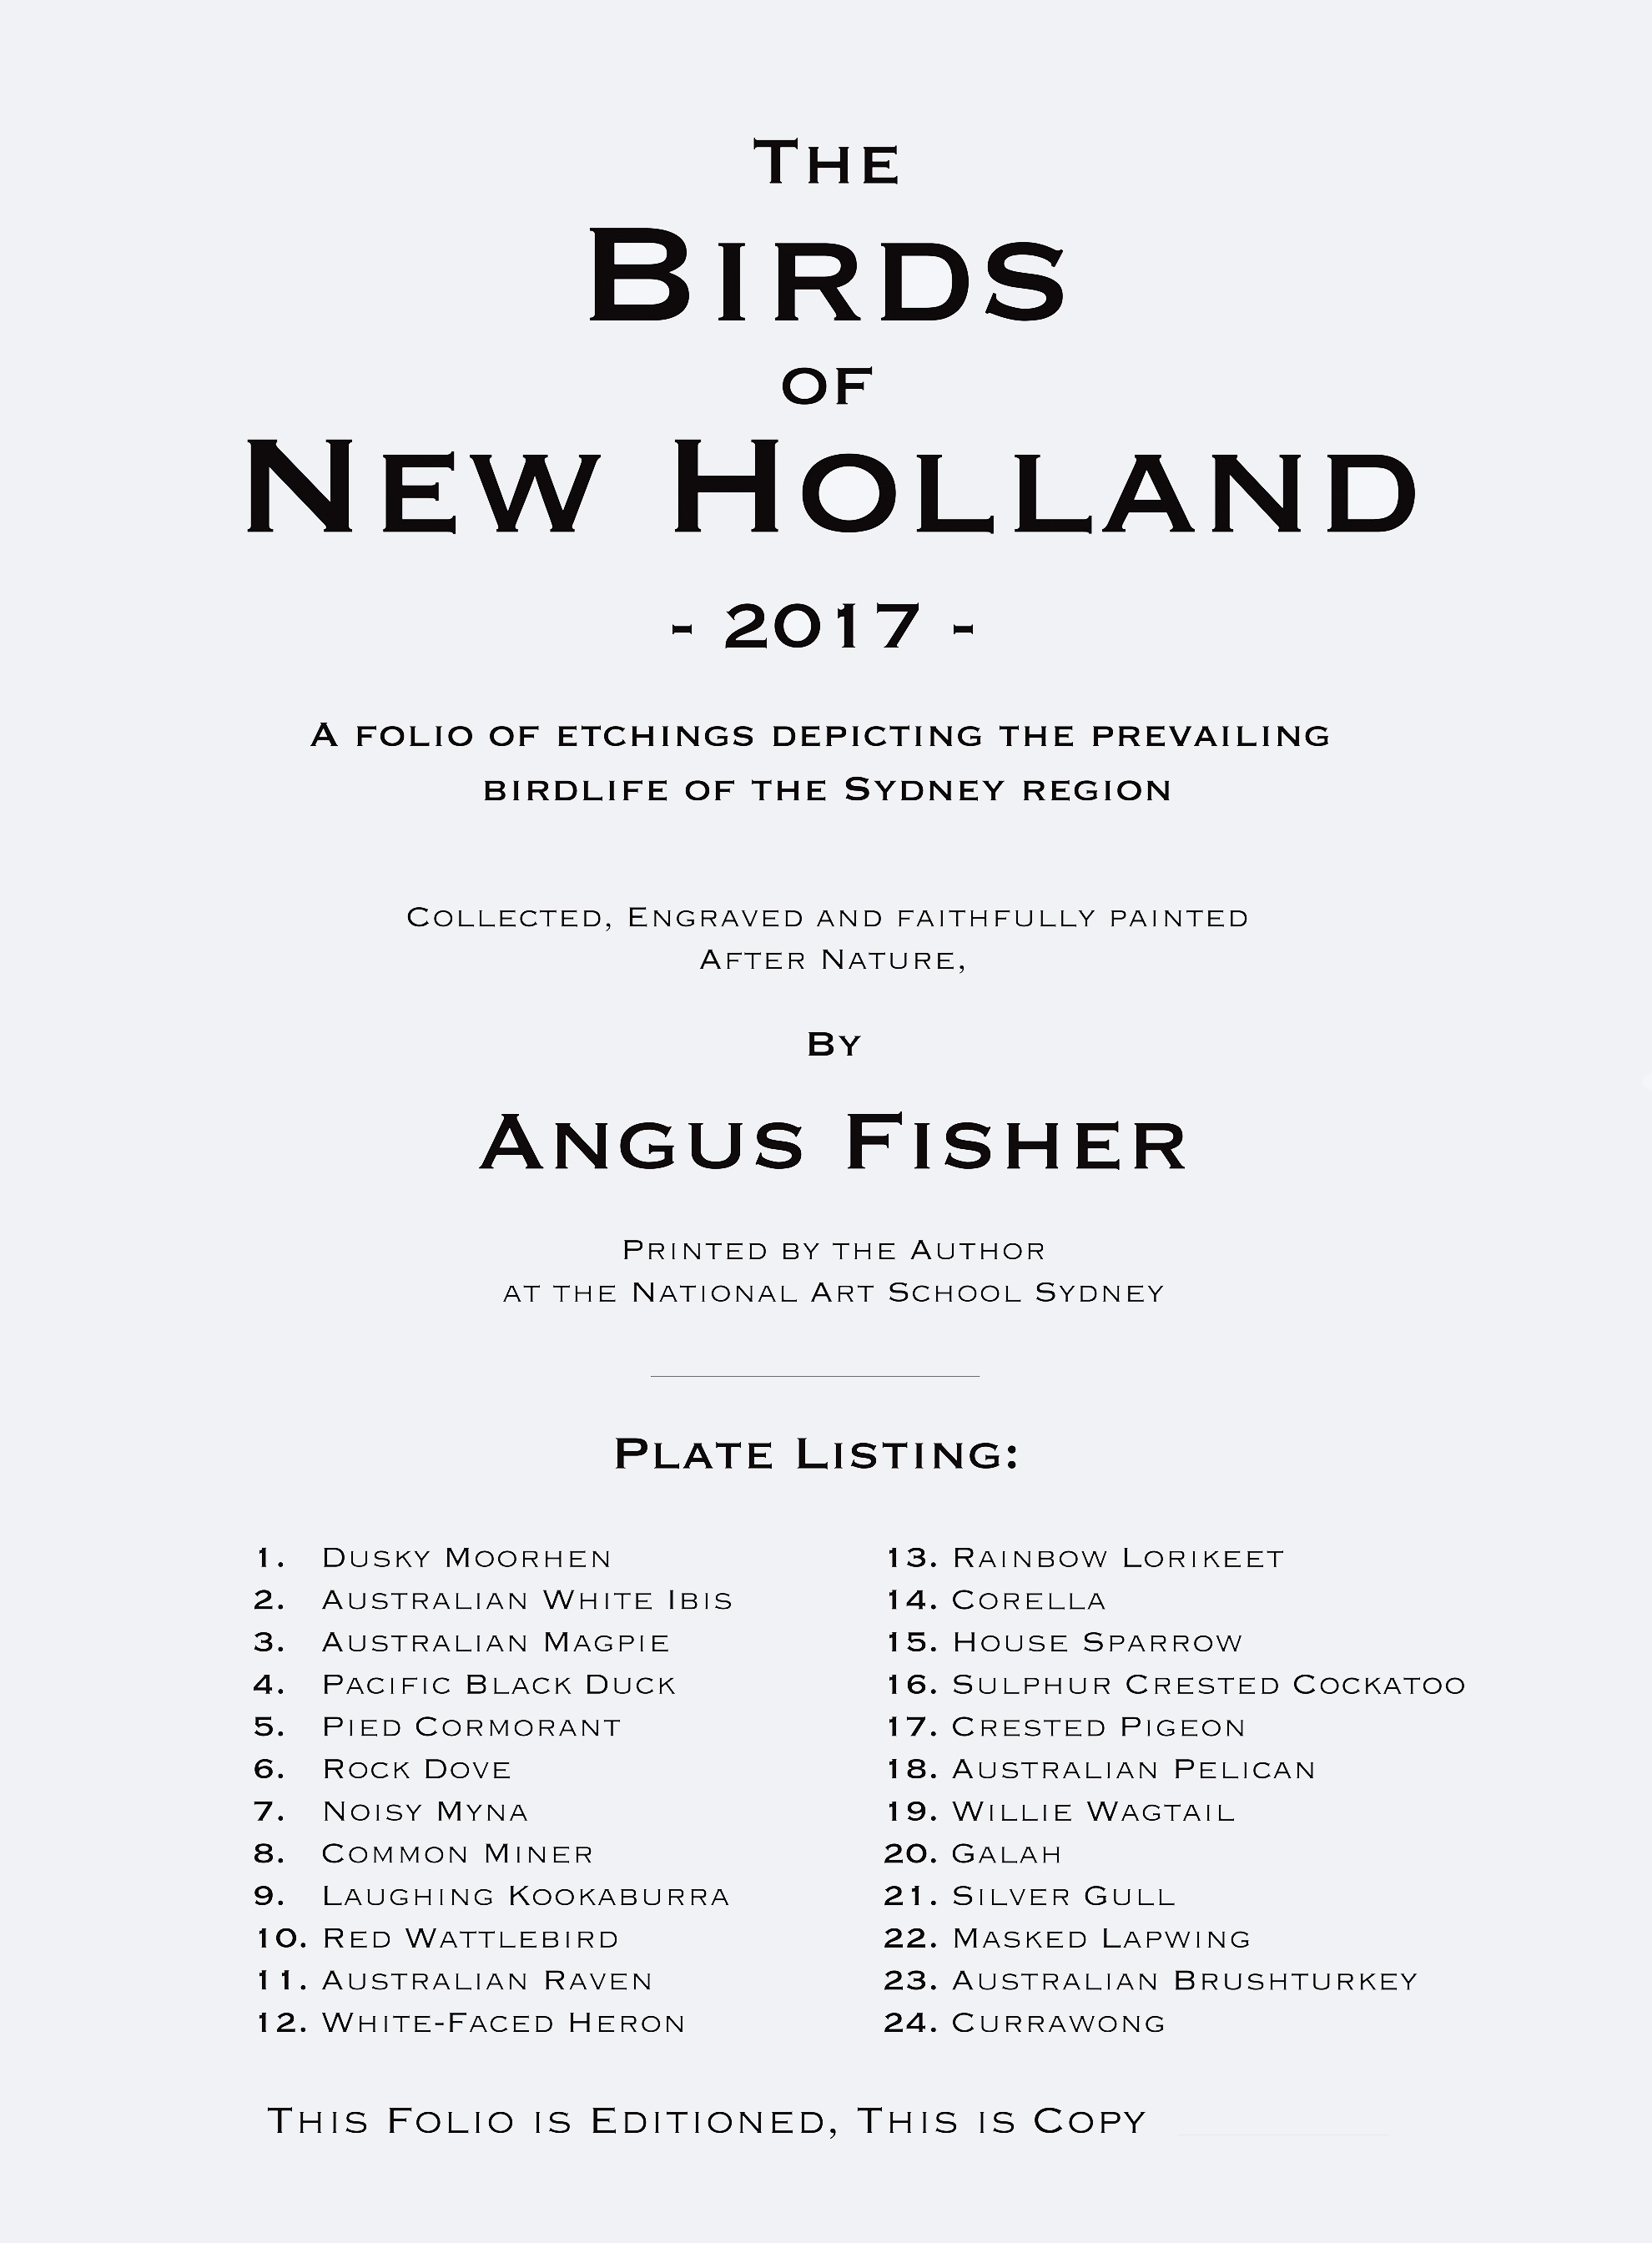 'Birds of New Holland Colophon'